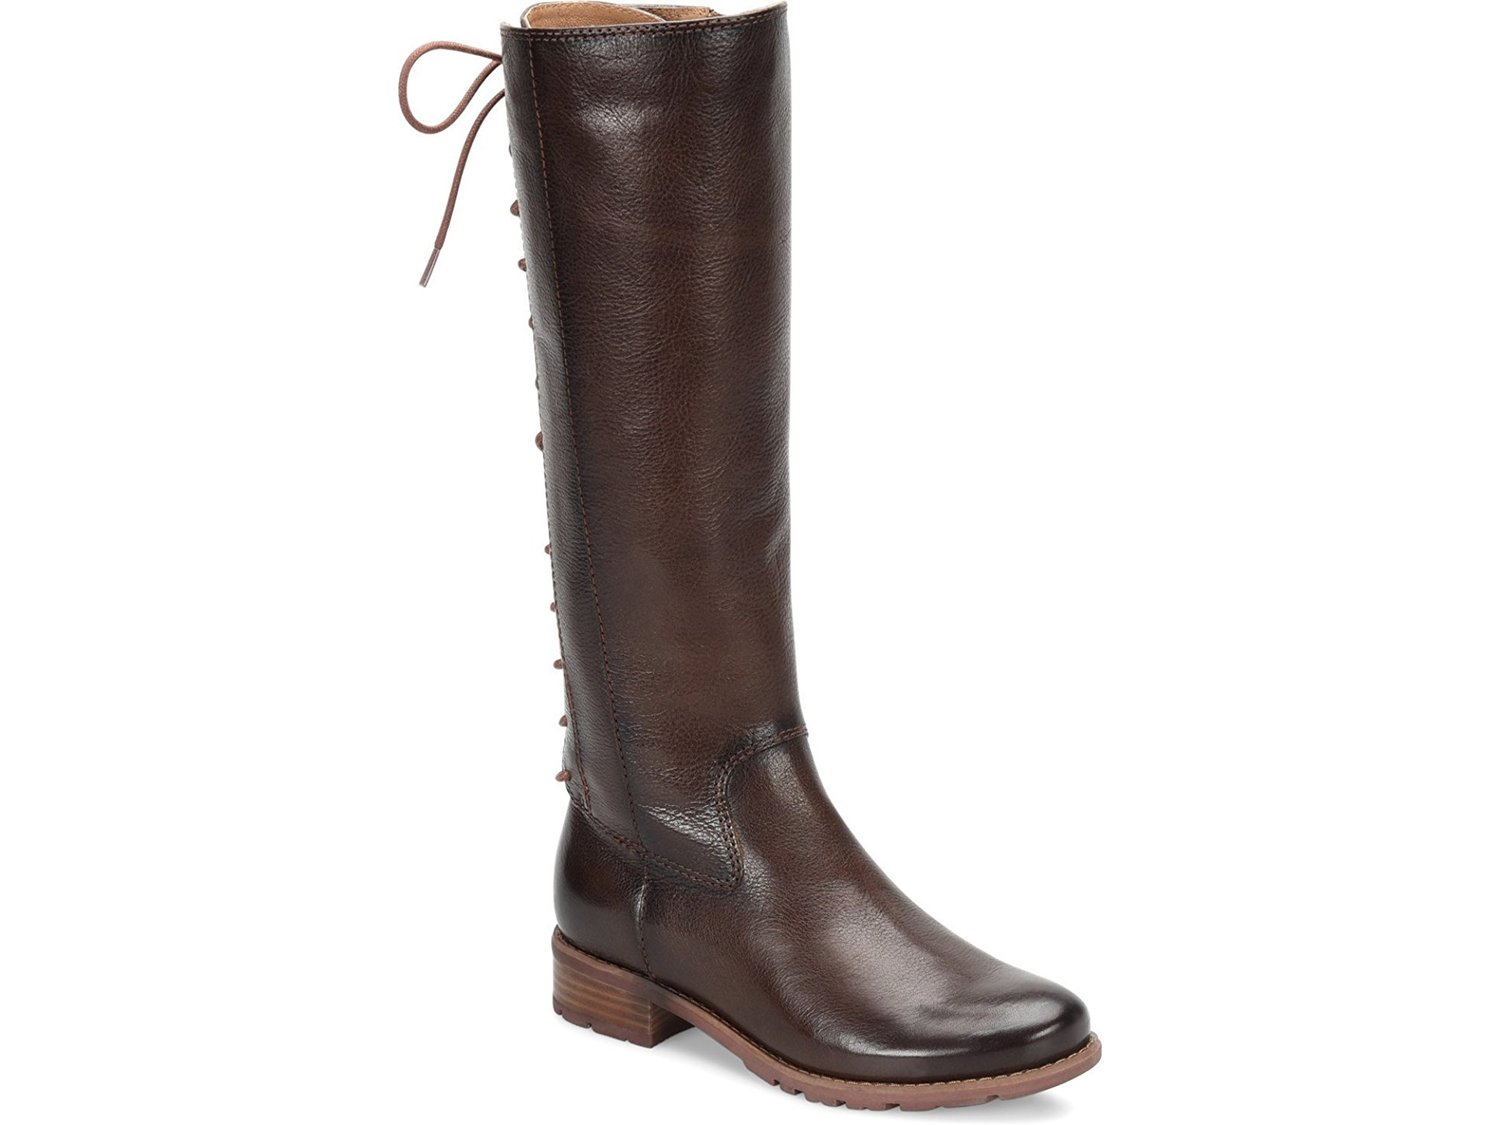 Sofft Womens Sharnell Round Toe Knee High Fashion Boots by Sofft